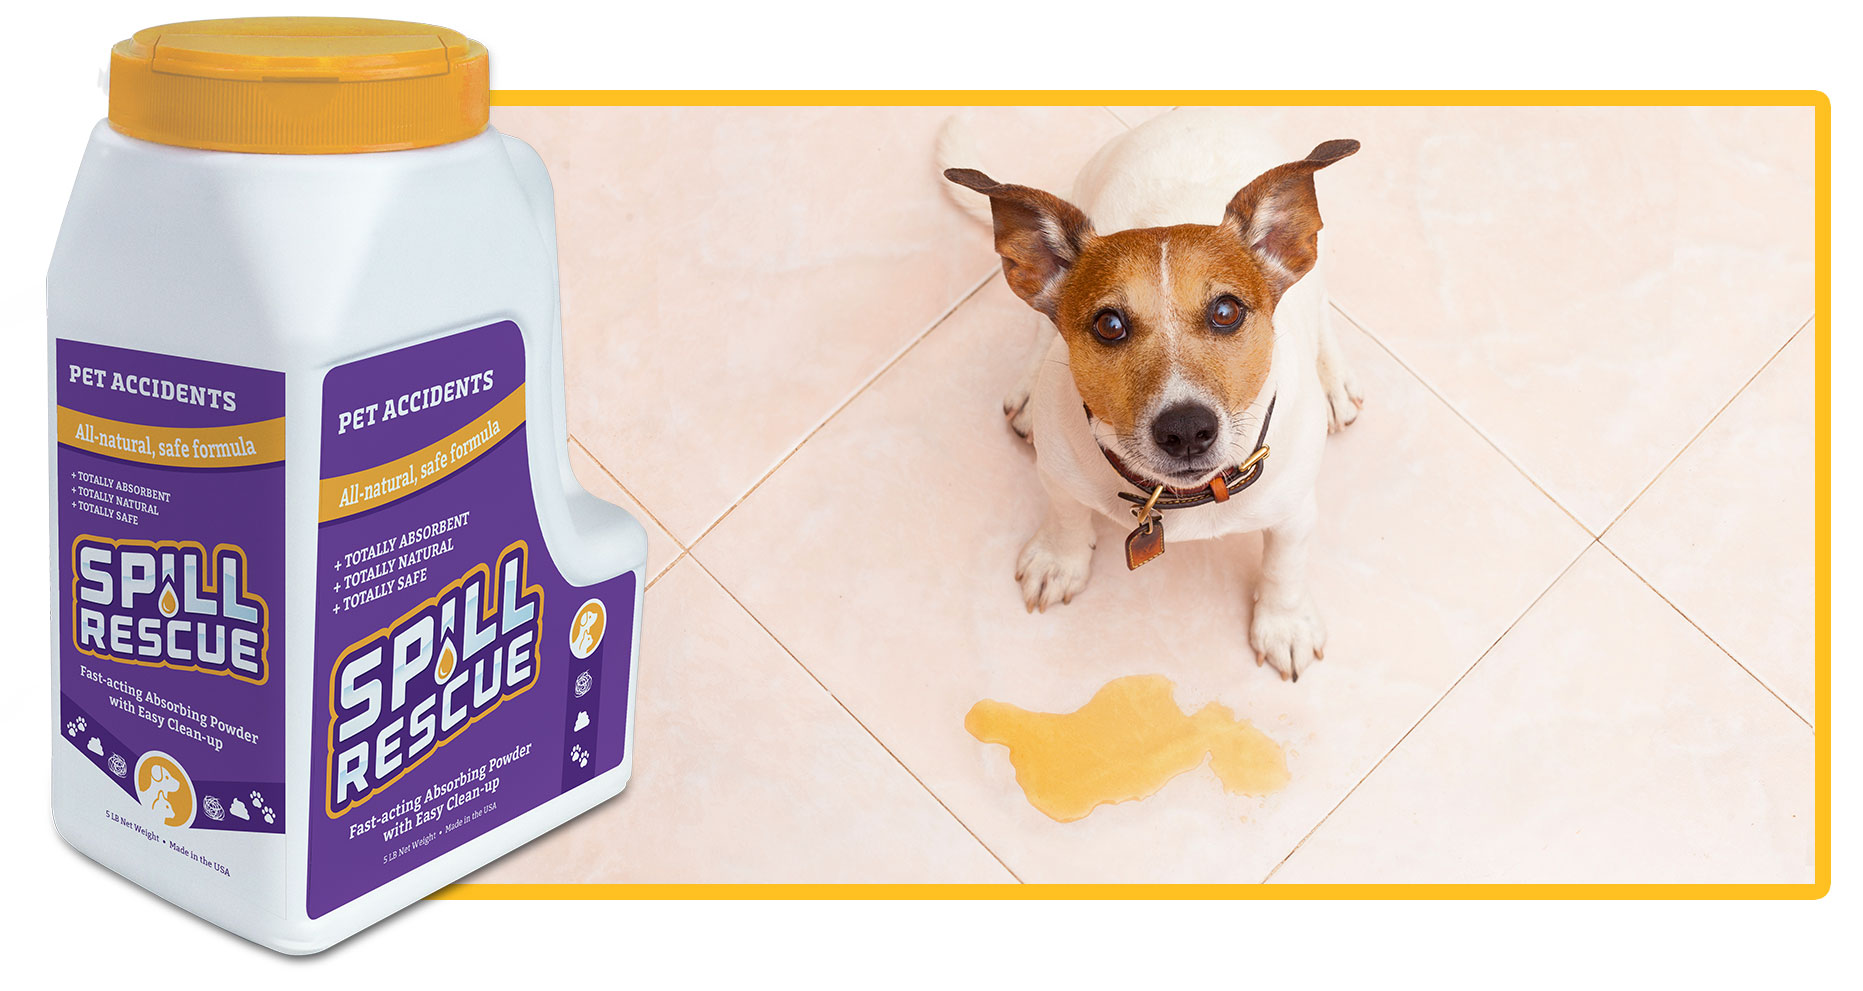 PureSky Products Spill Rescue for Pet Accidents